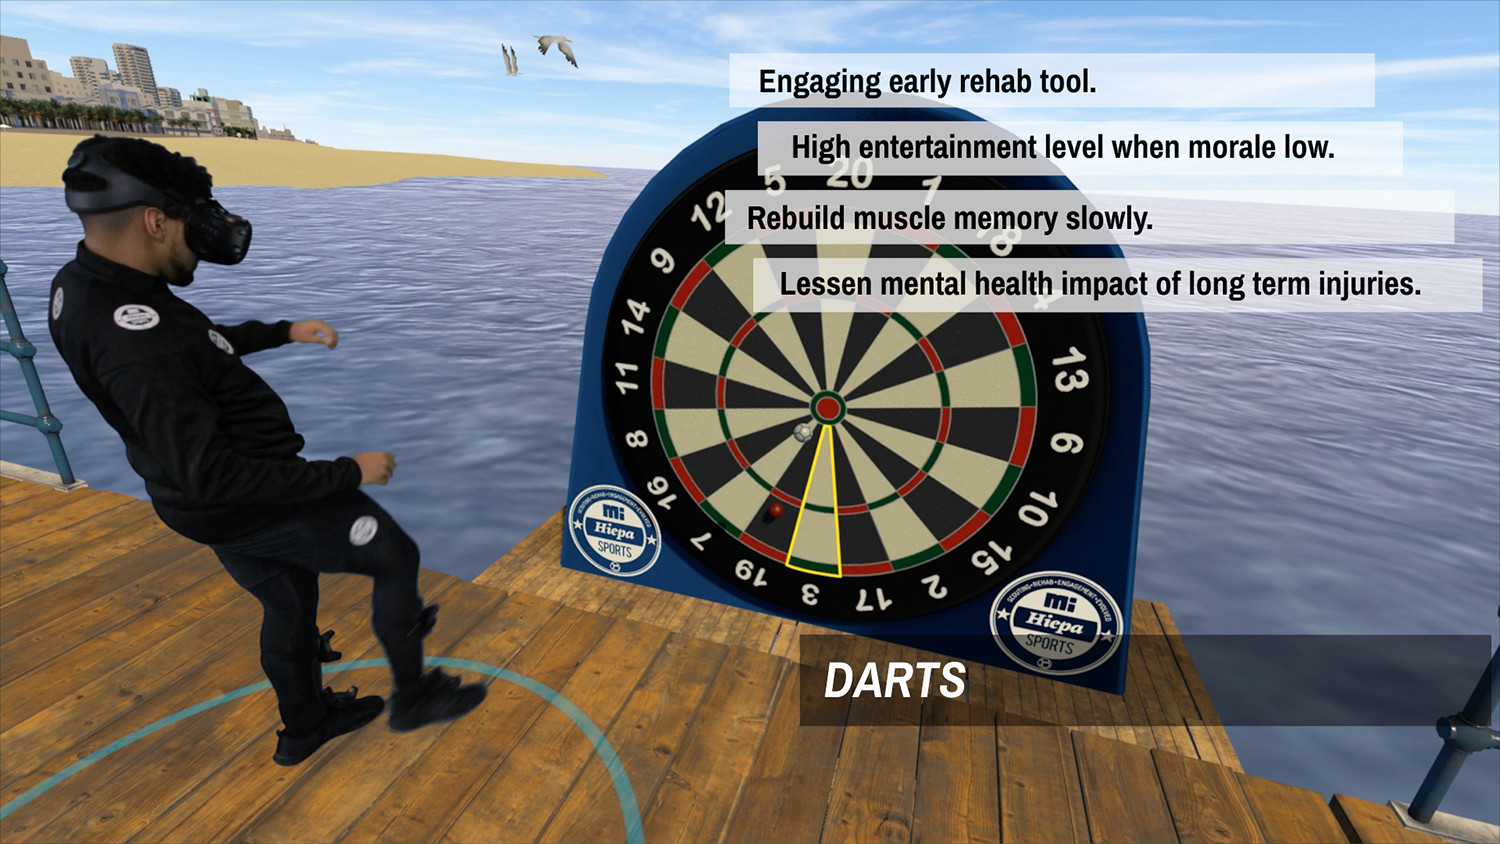 MHS_MR_Darts_014.jpg